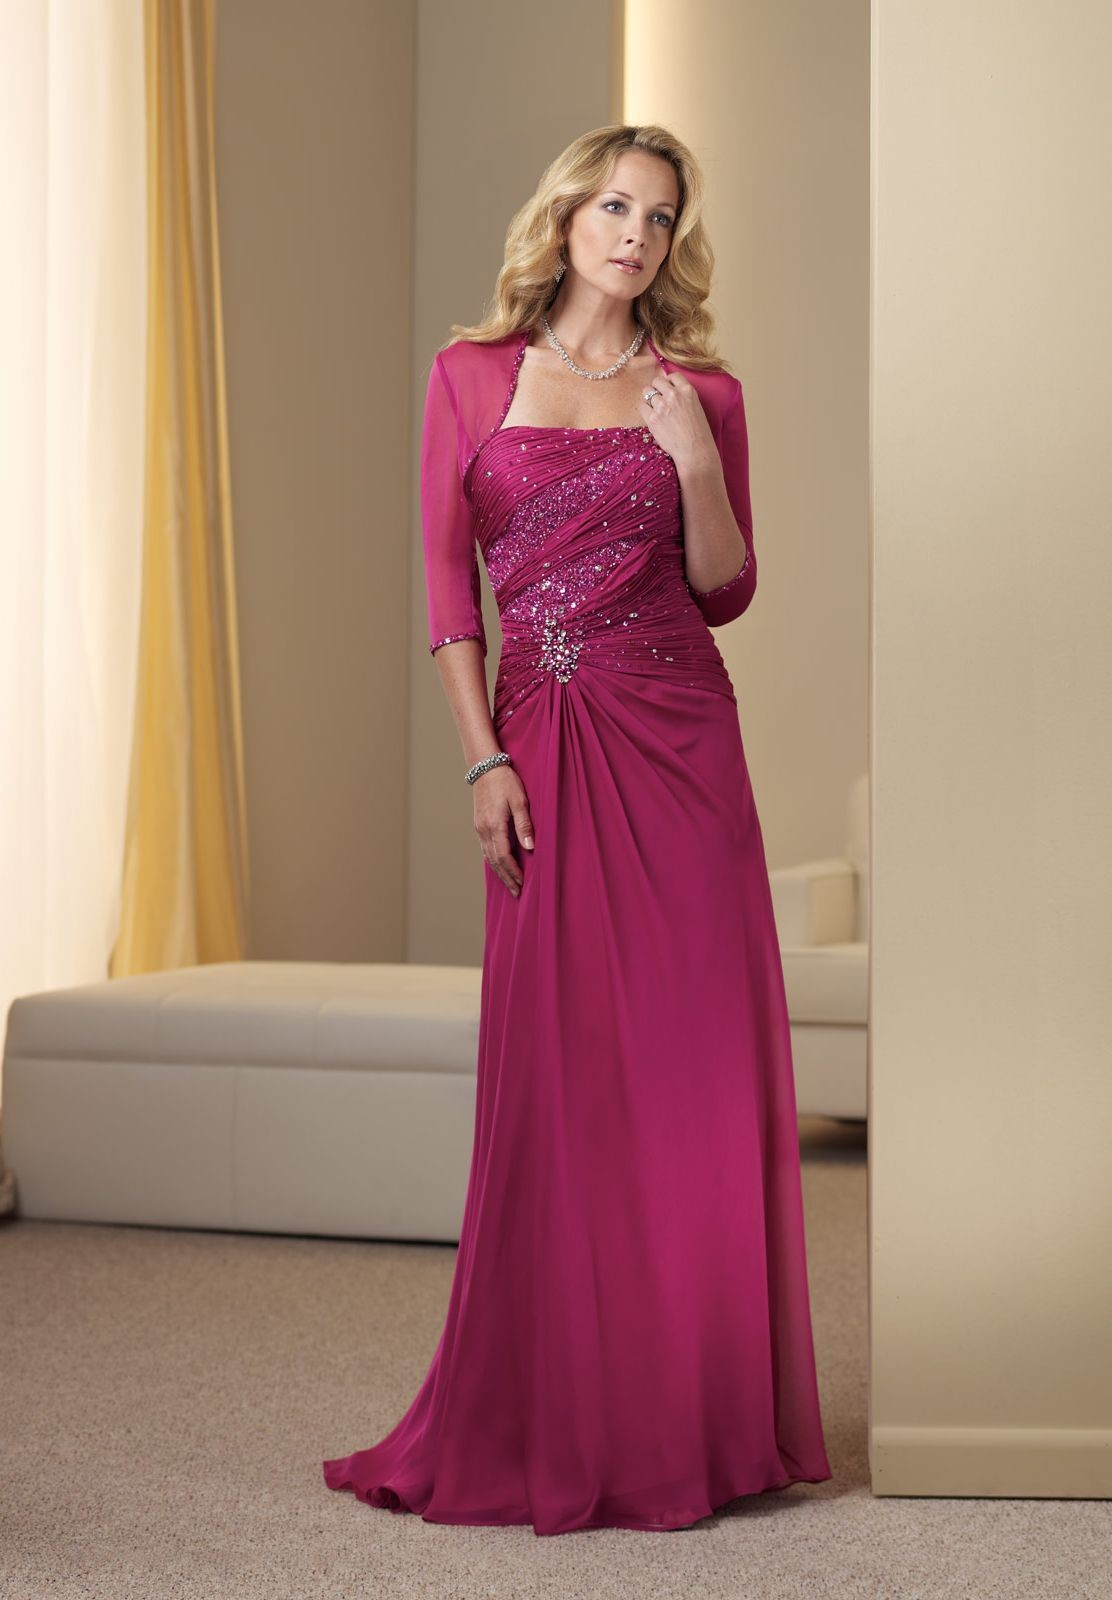 cad98566ce3 Great Mother Of The Bride Dresses